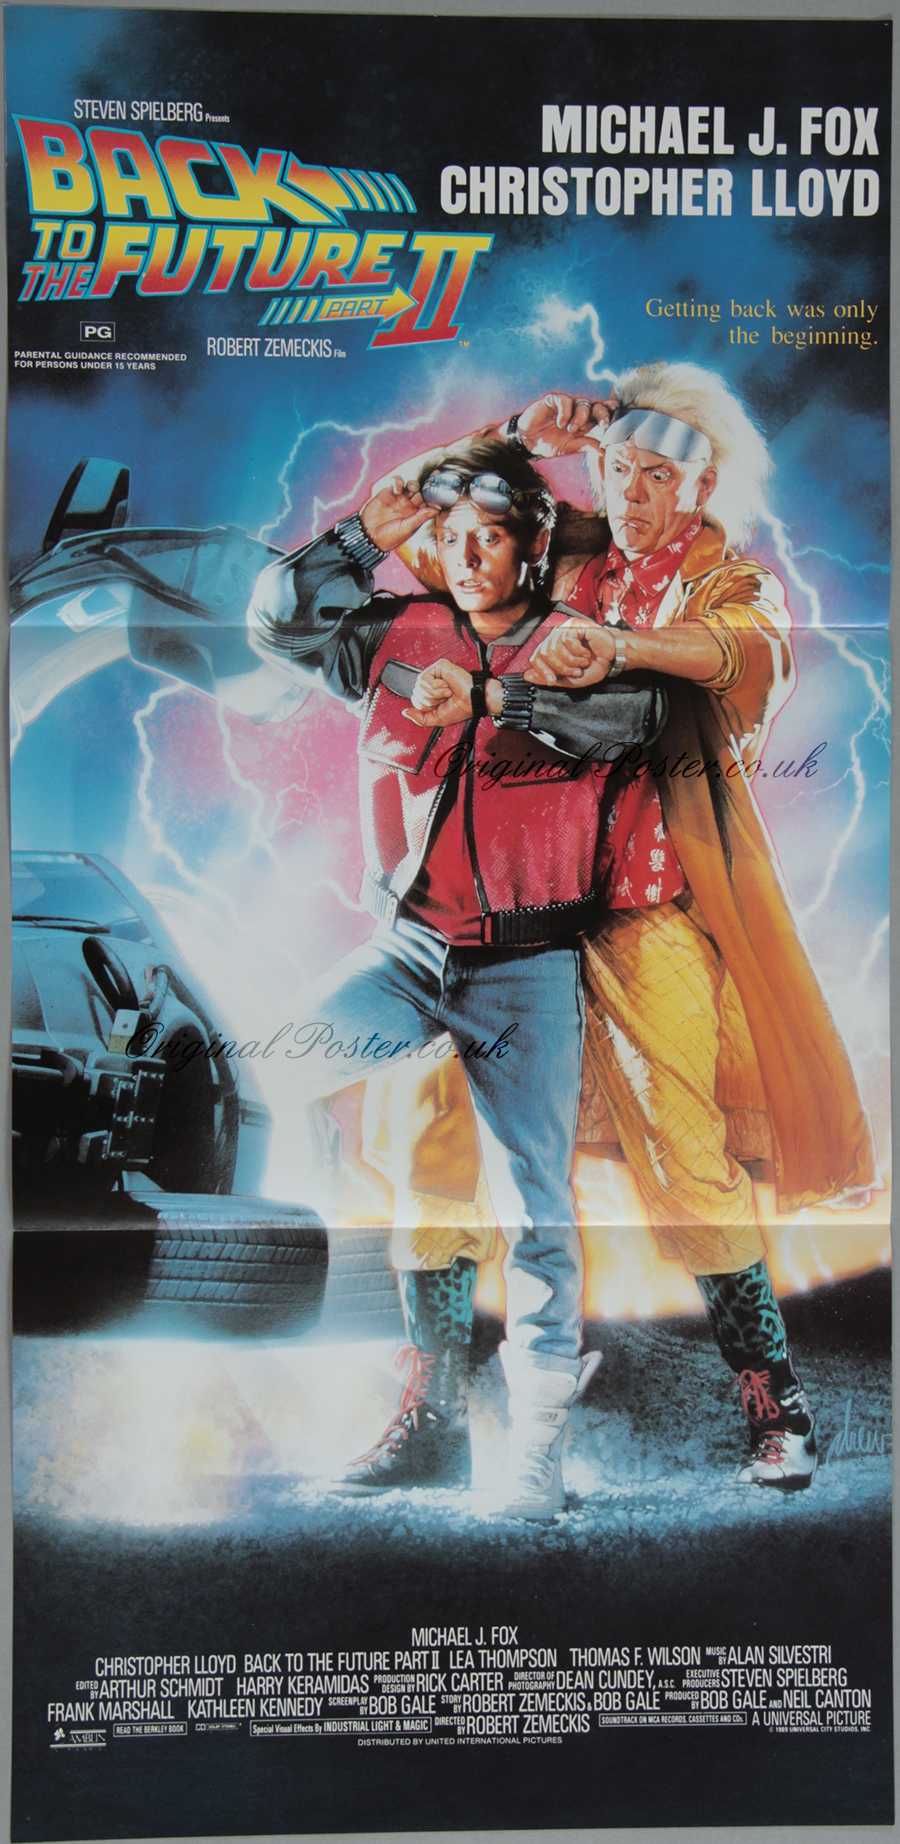 back to the future part ii original vintage film poster original poster vintage film and. Black Bedroom Furniture Sets. Home Design Ideas